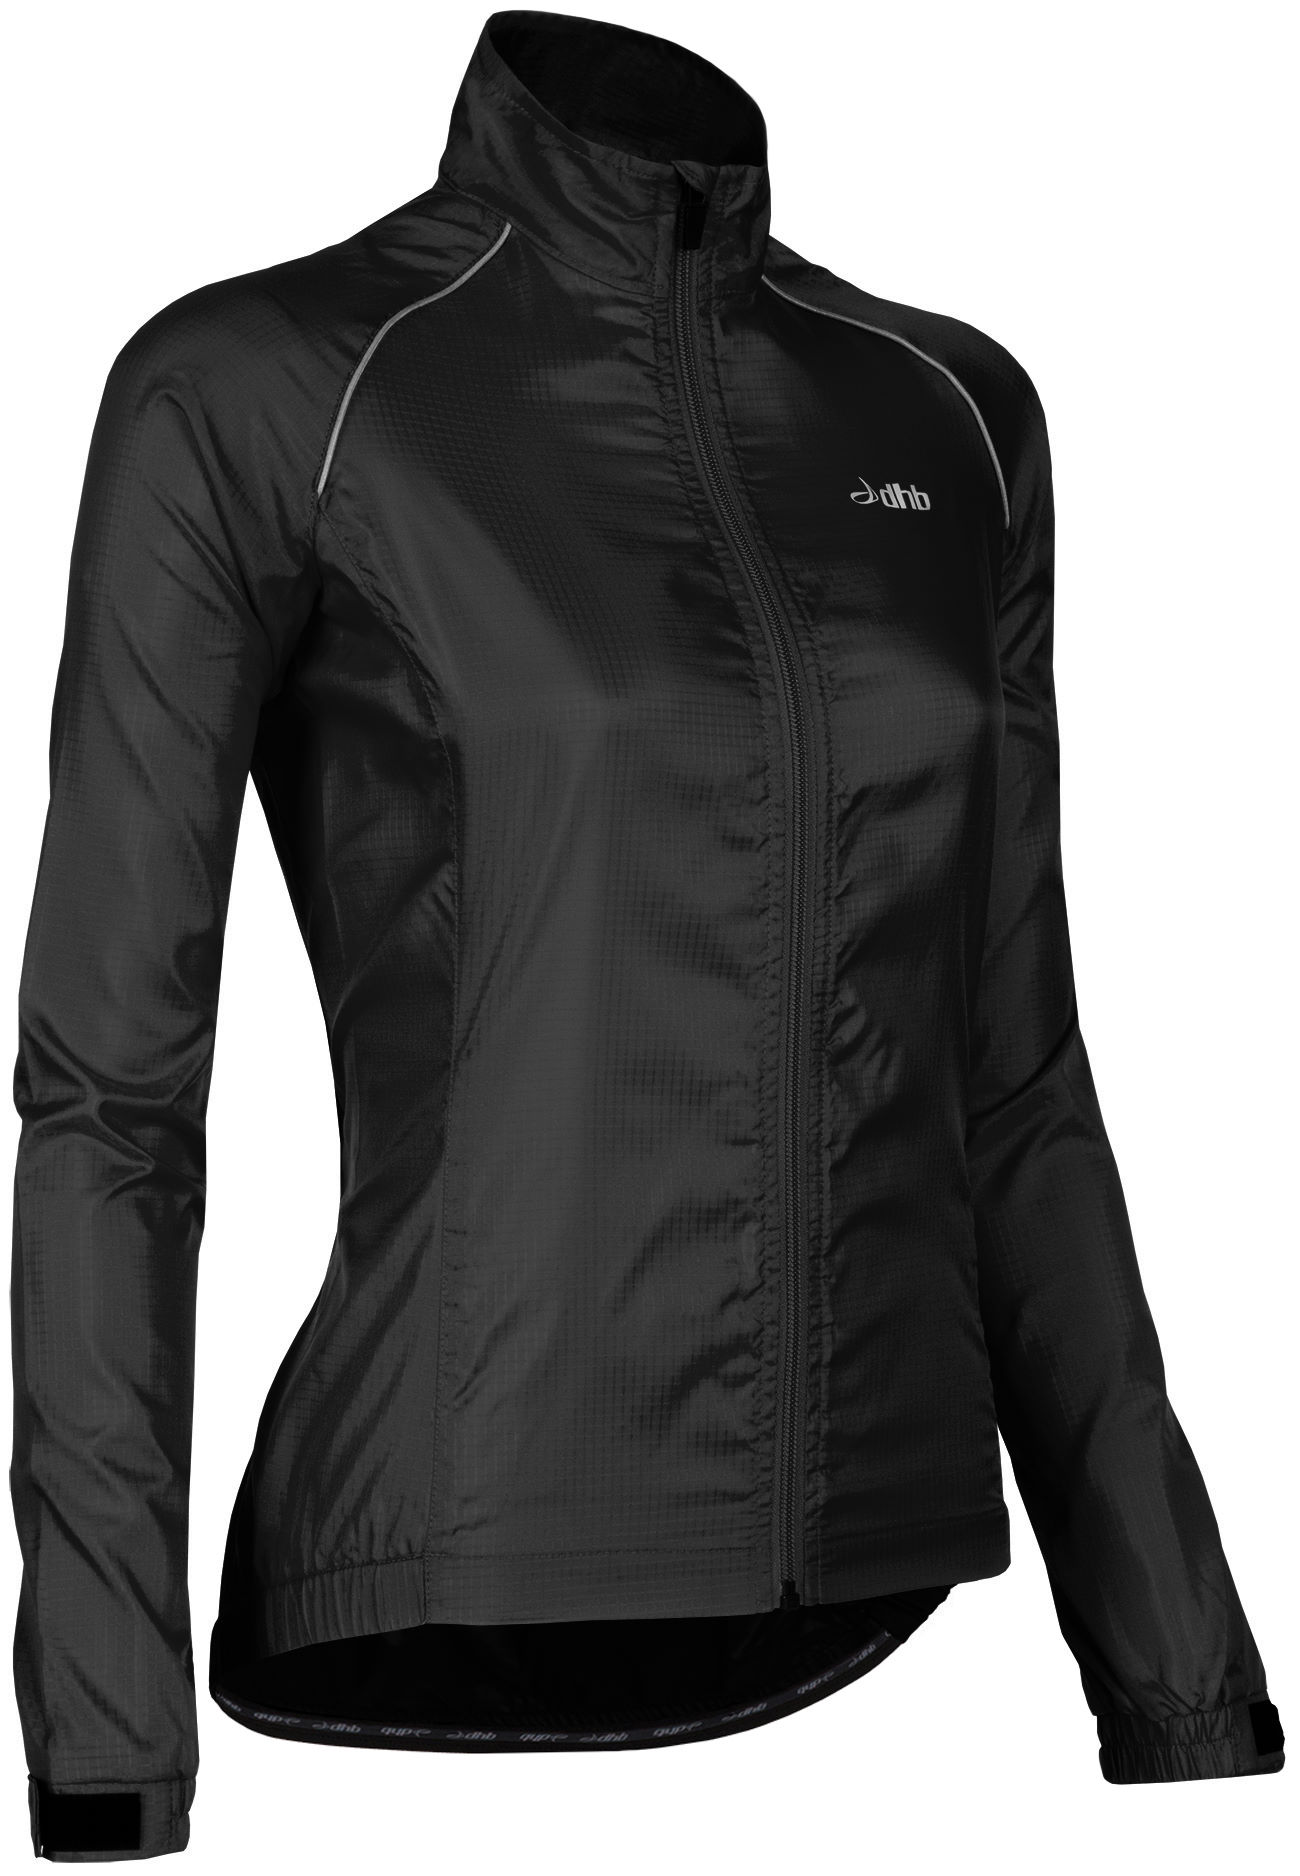 dhb Women's Active Waterproof Cycle Jacket   Cycling Waterproof Jackets